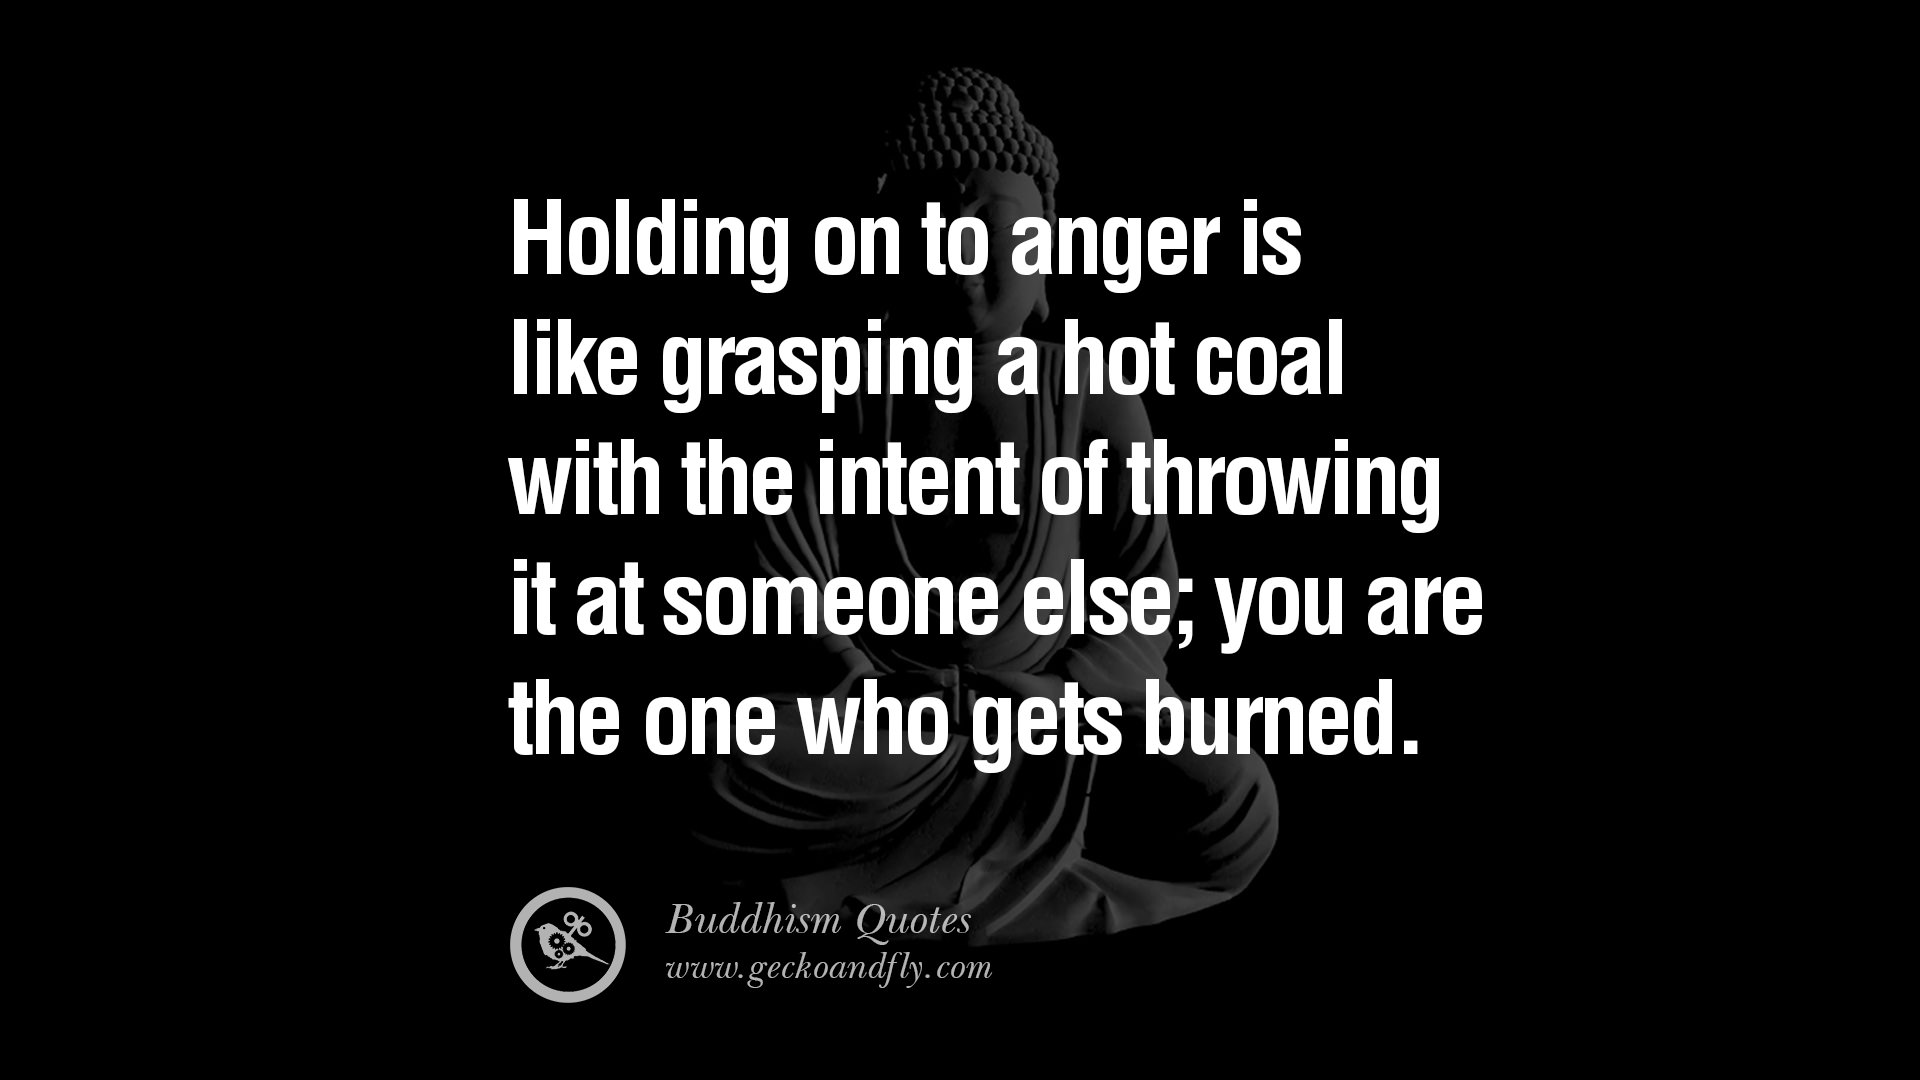 Buddha Quotes Tumblr 13 Zen Buddhism Quotes On Love Anger Management And Salvation